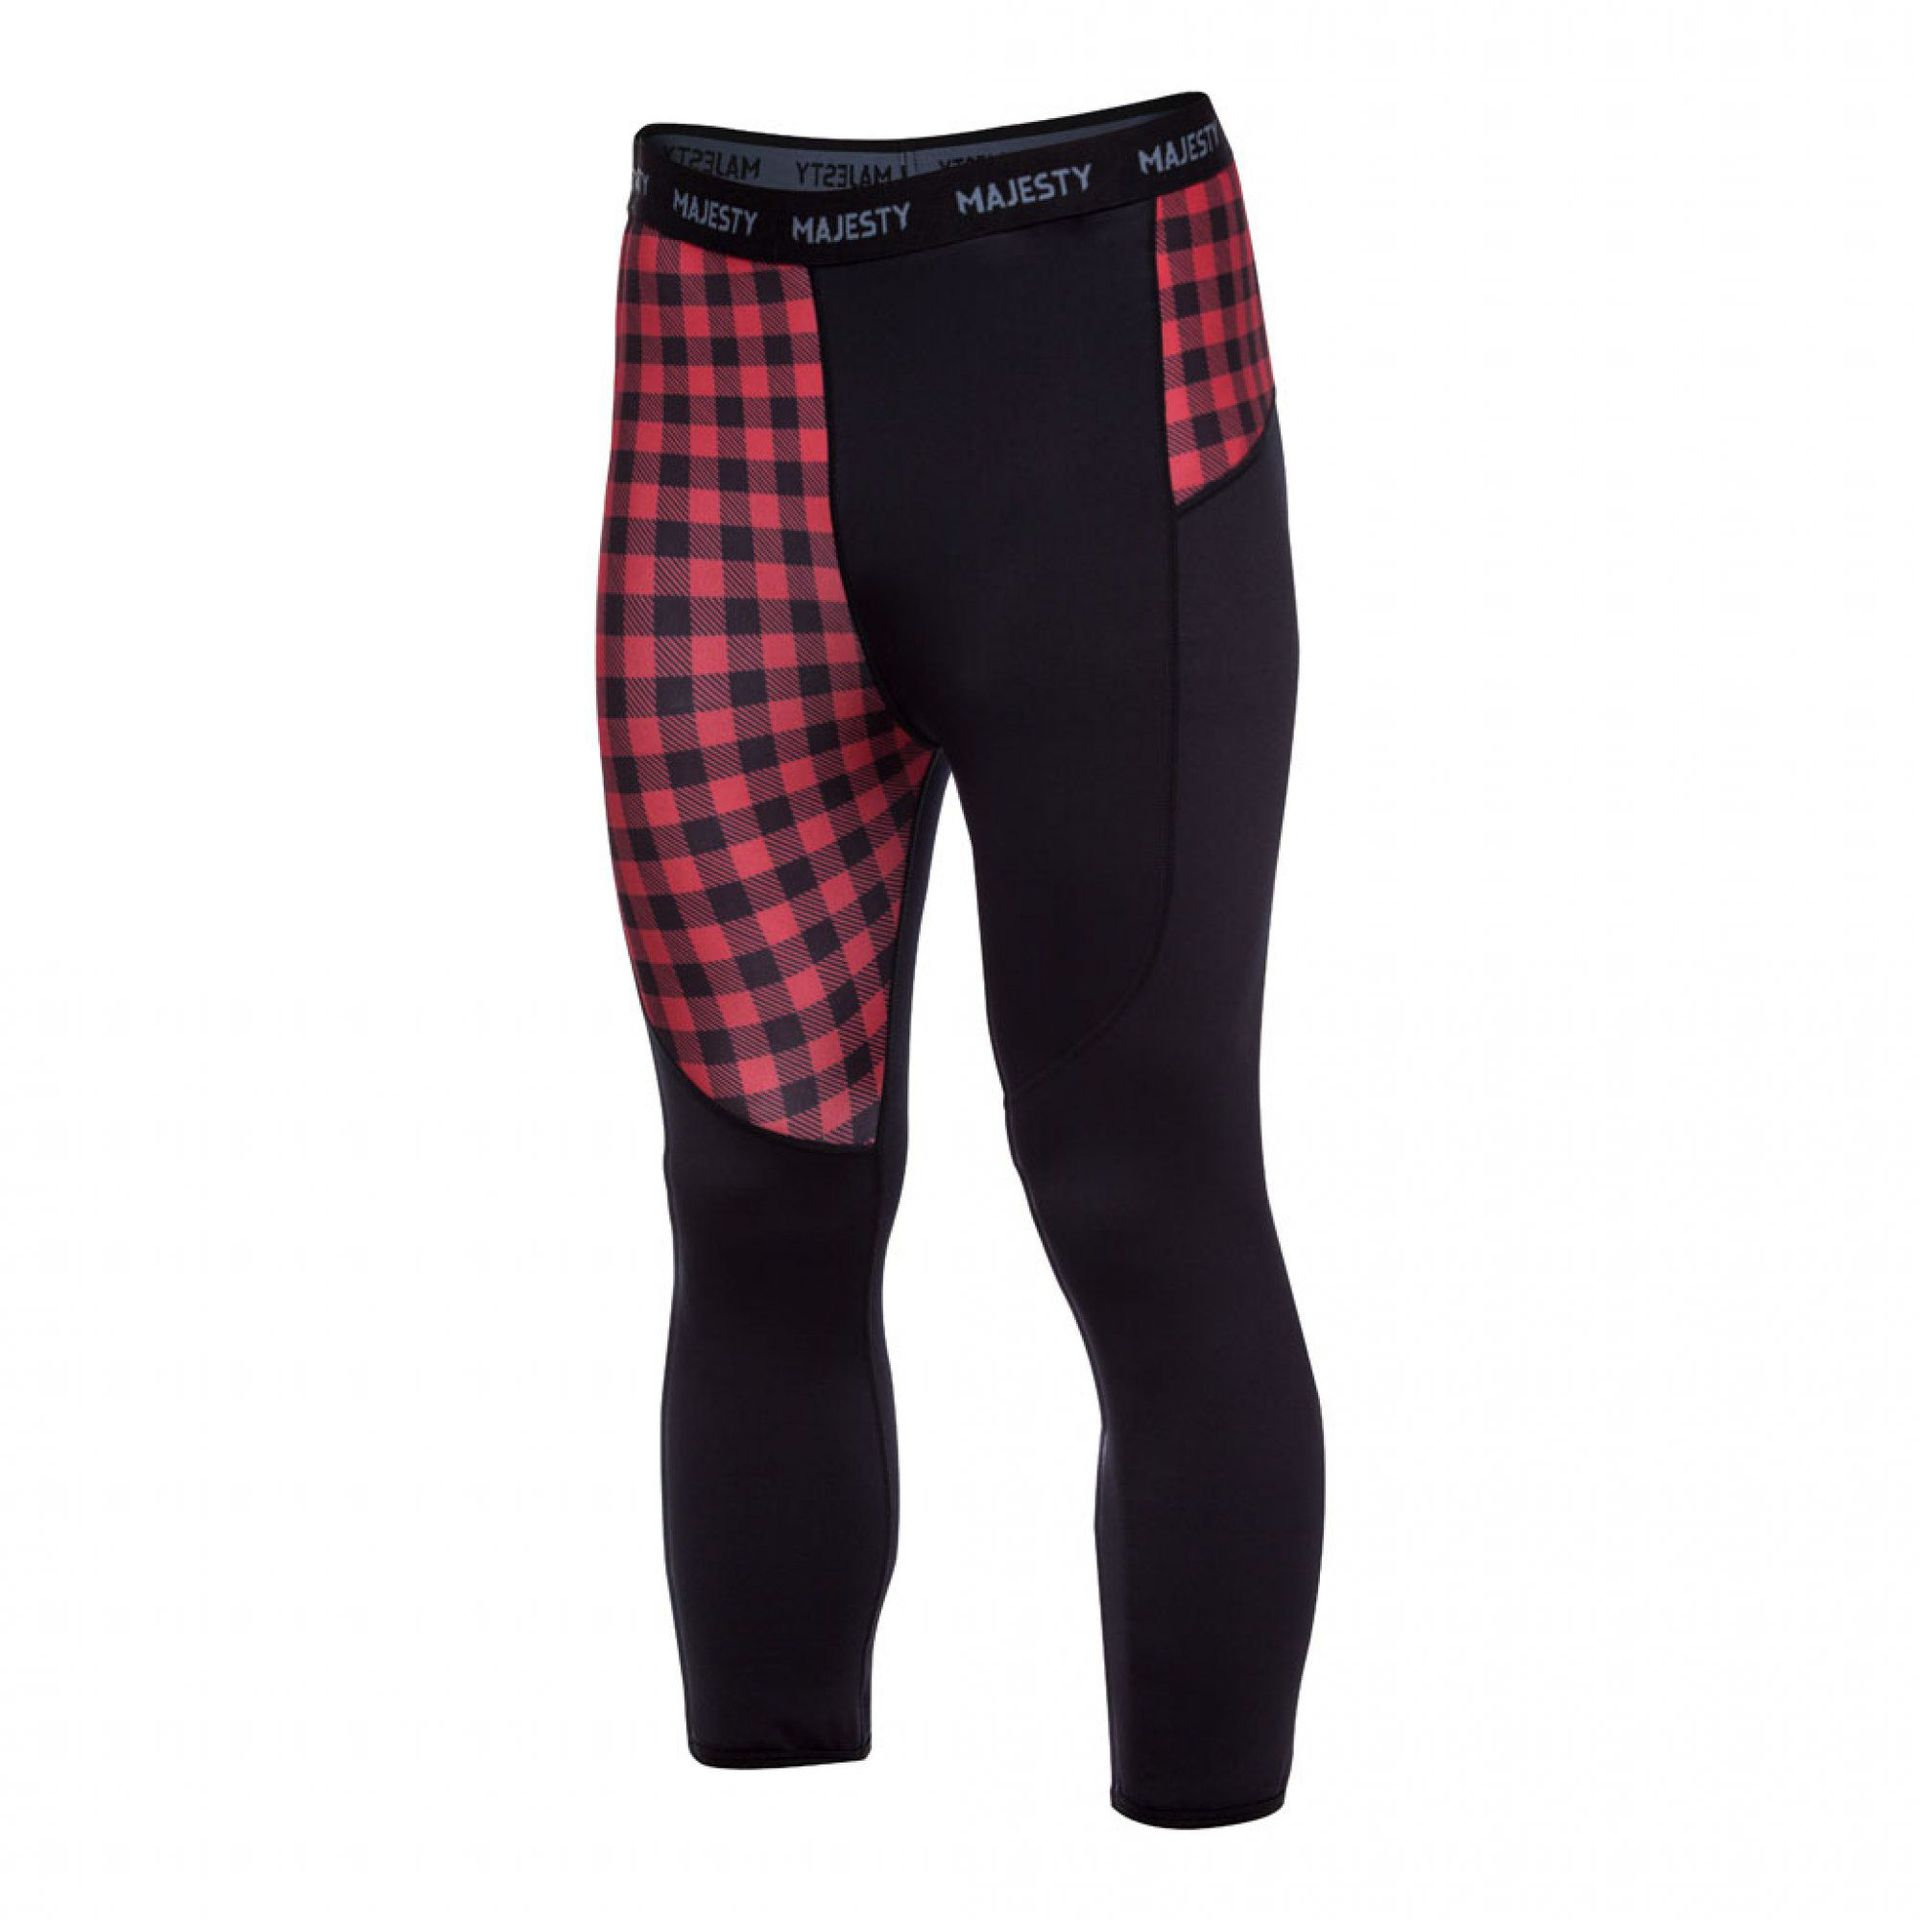 SPODNIE MAJESTY SURFACE LUMBERJACK 1